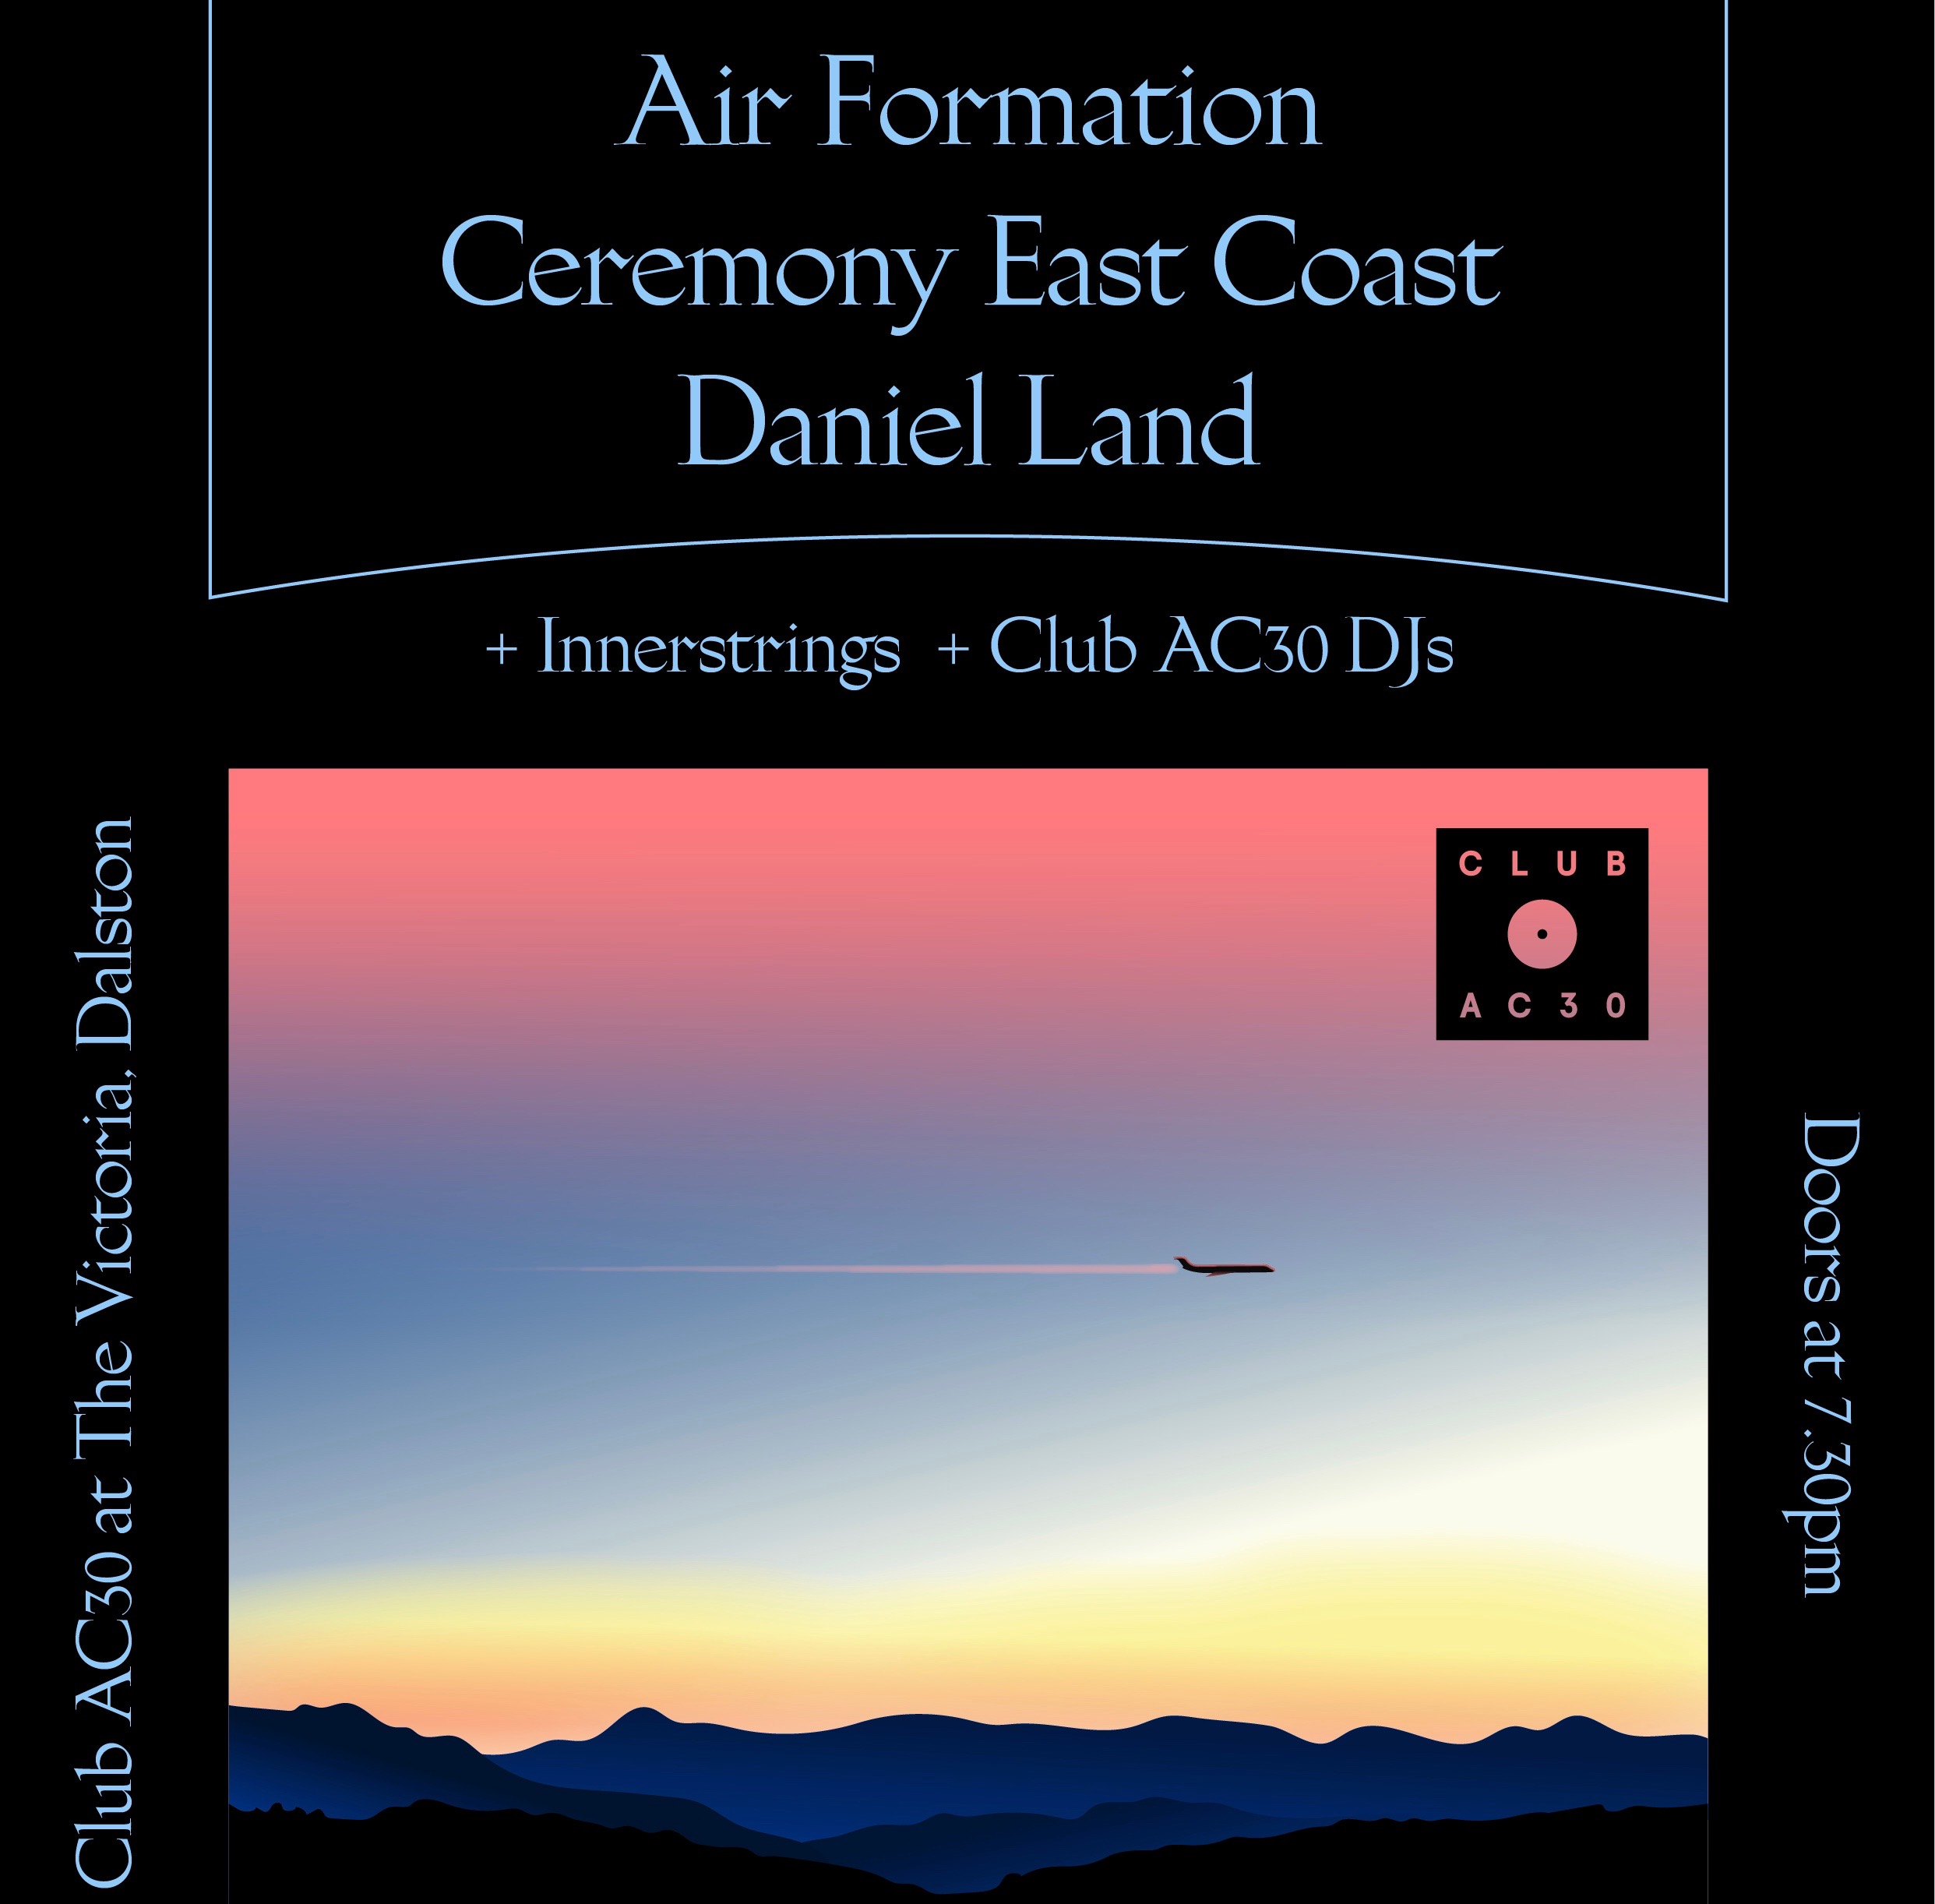 Club AC30 presents Air Formation / Ceremony East Coast / Daniel Land at The Victoria promotional image